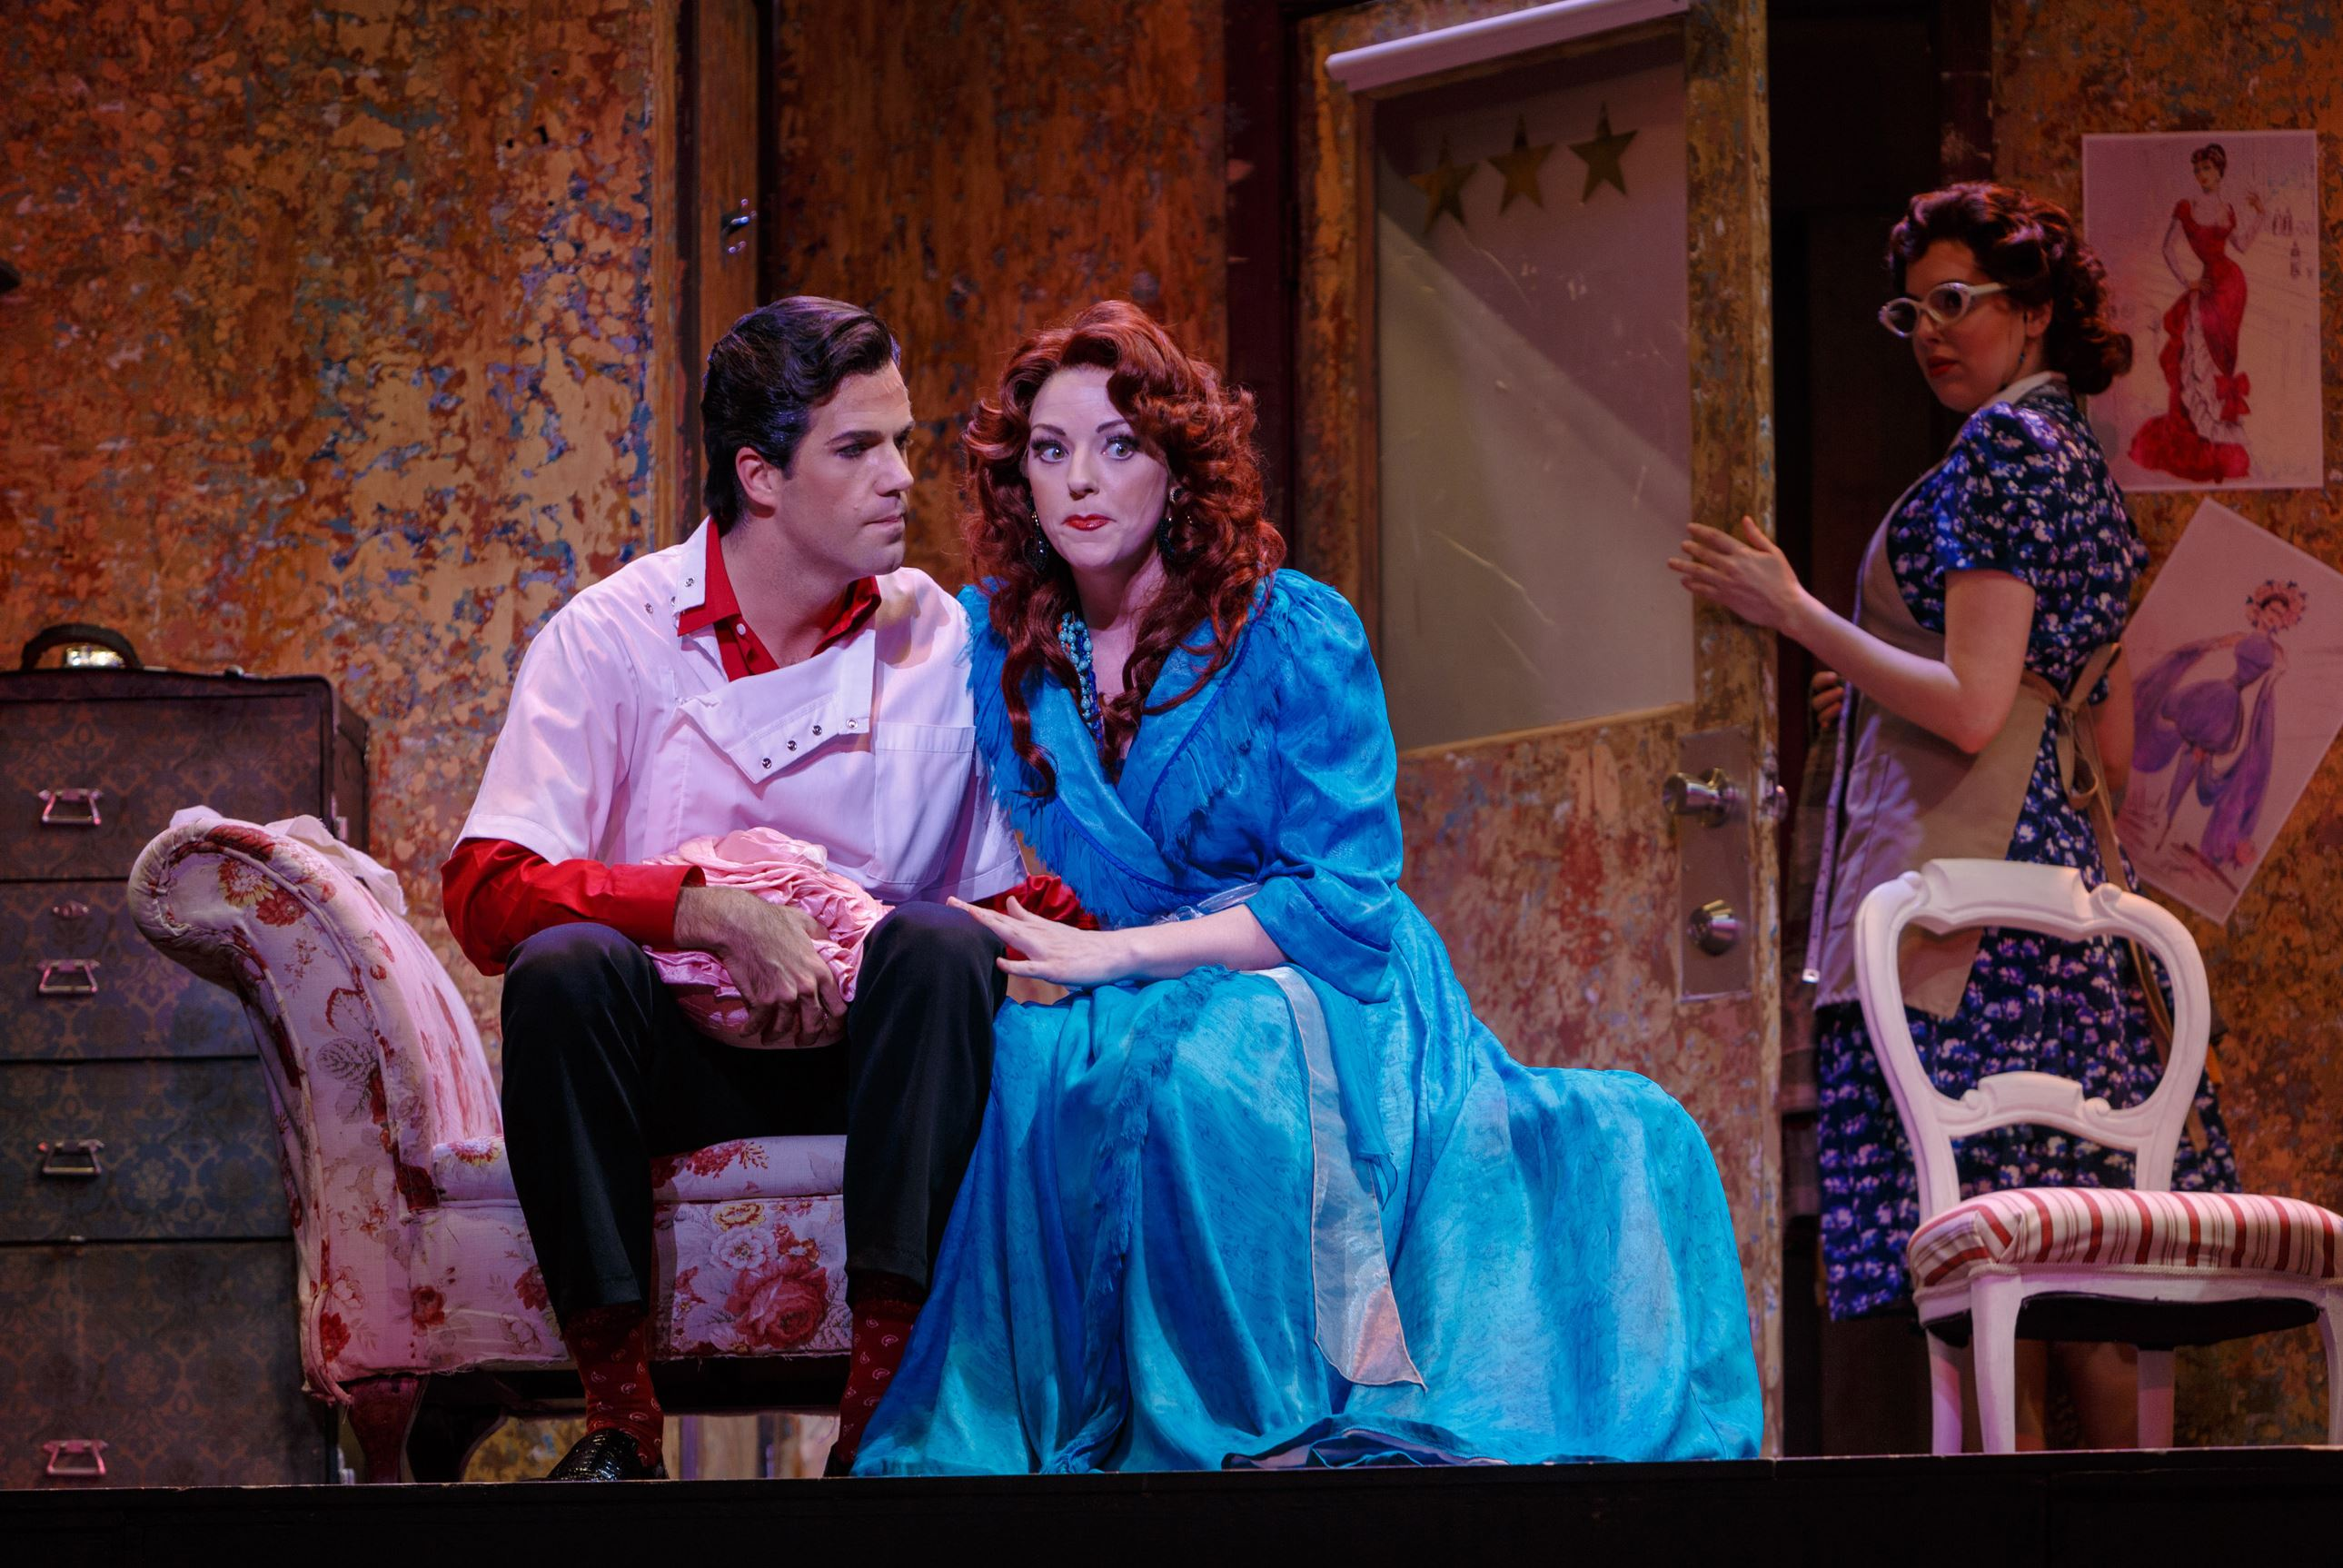 Barber Of Seville Figaro : Review: Pittsburgh Opera gives classic Barber of Seville a Hollywoo...